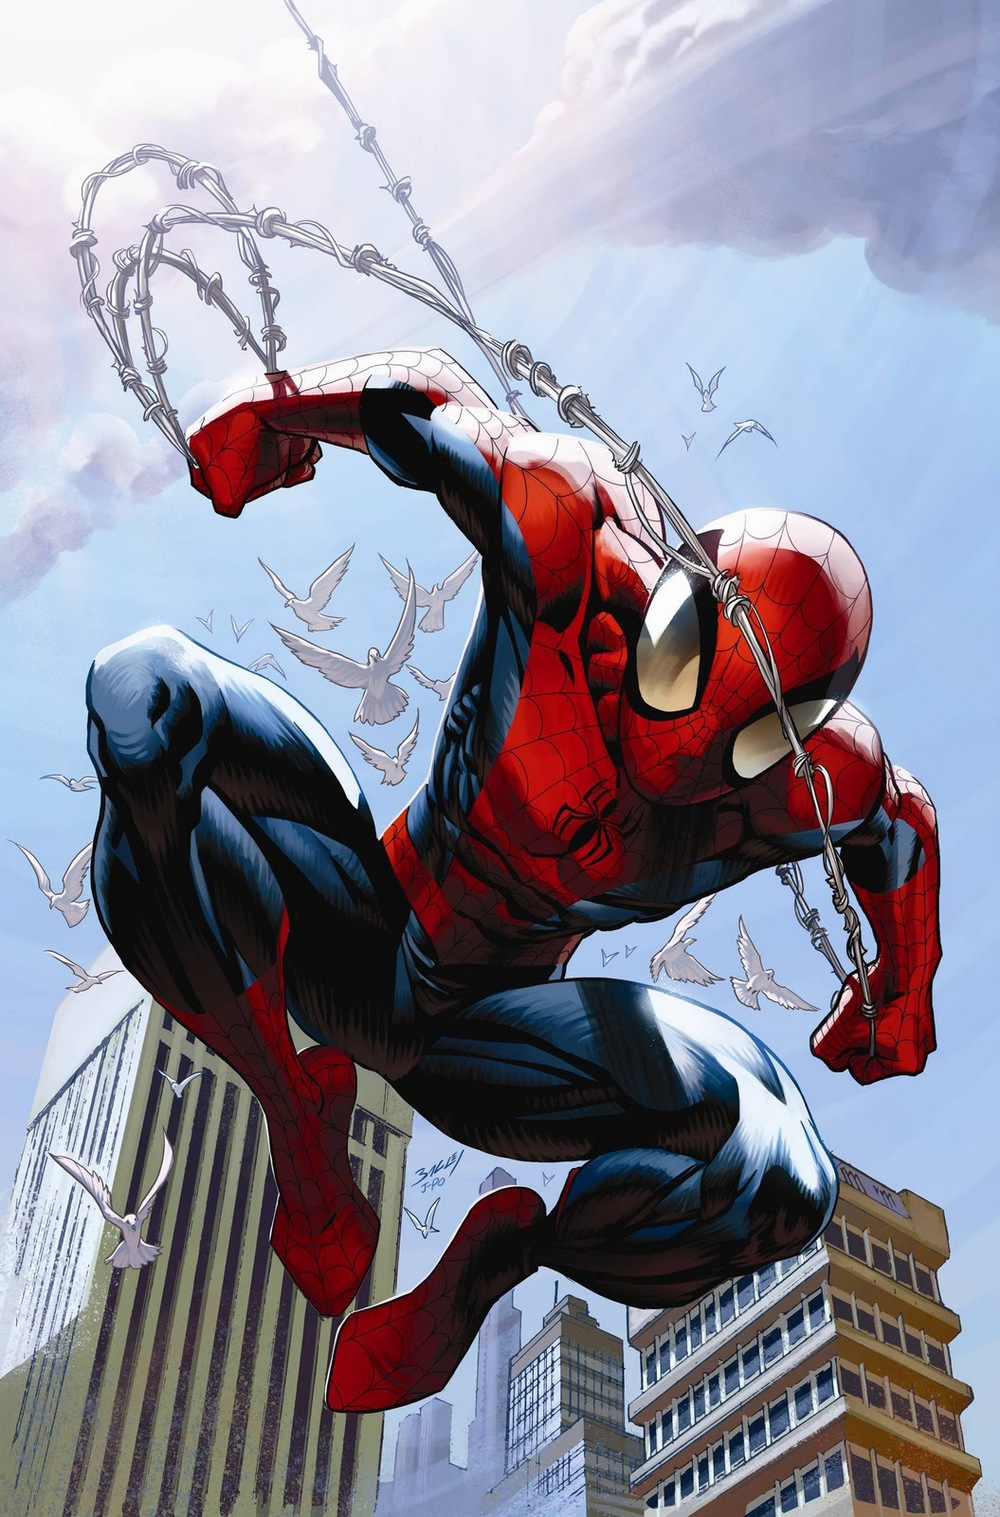 ULTIMATE-COMICS-SPIDER-MAN-156-DOSM.jpg